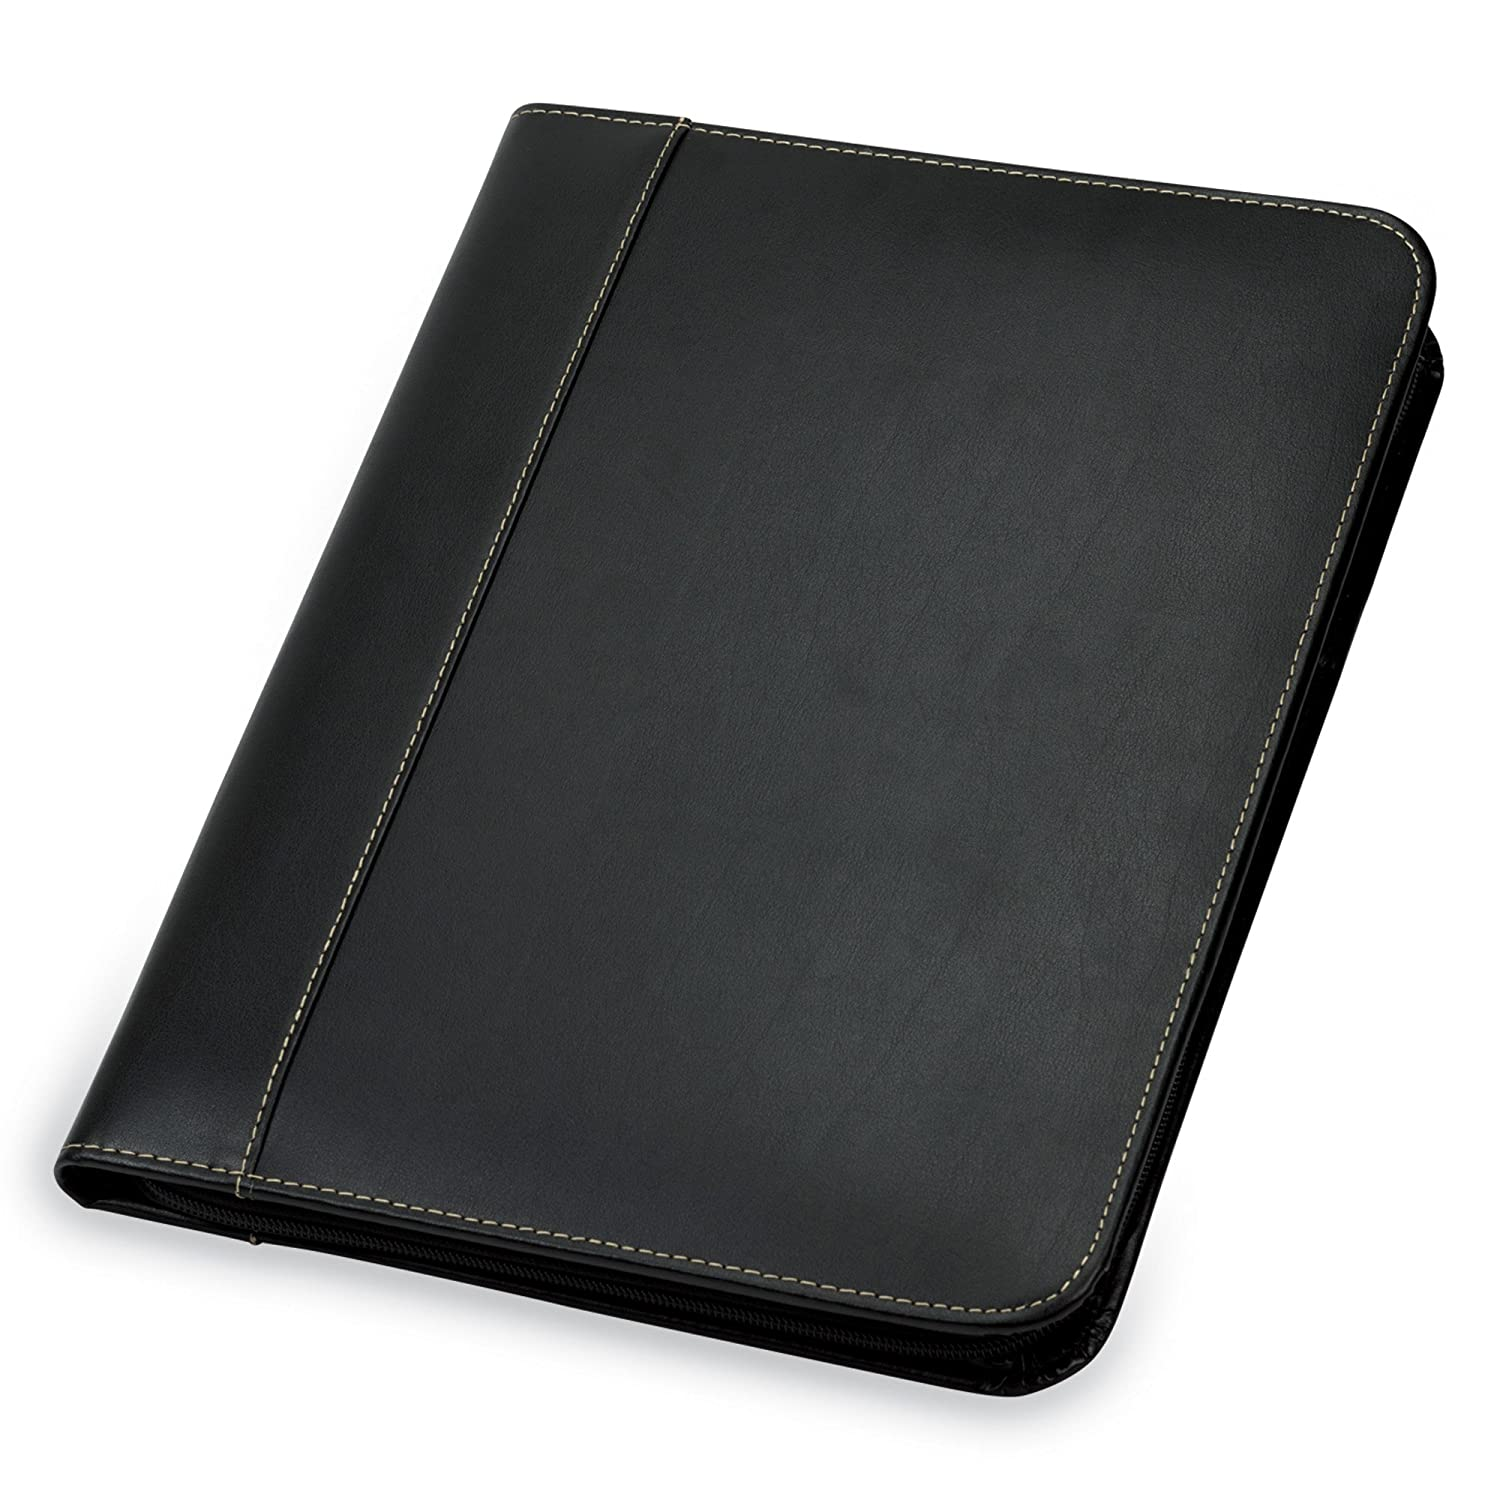 Amazoncom Samsill Contrast Stitch Leather Zipper Padfolio